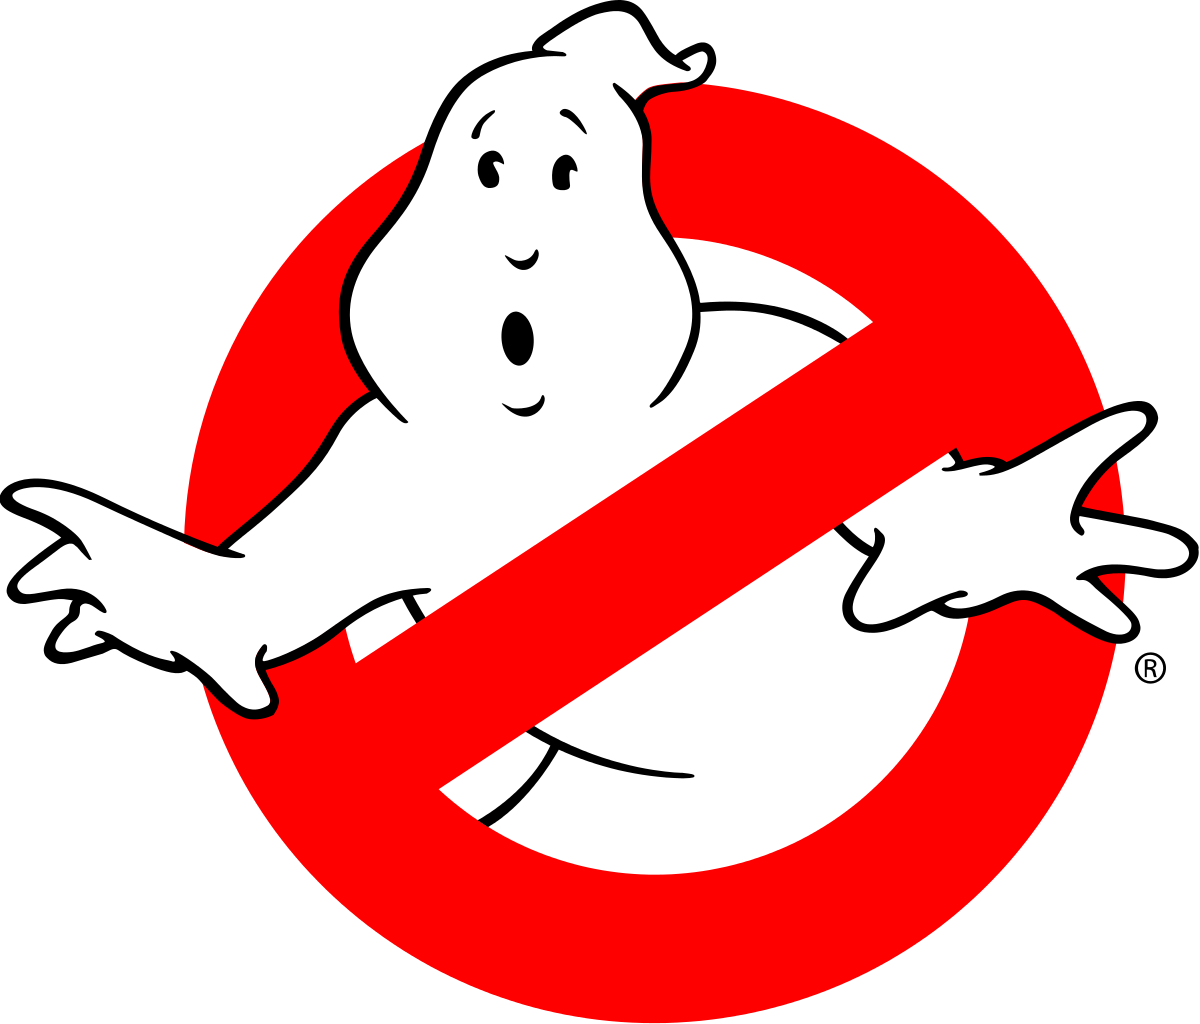 Slimer drawing ghostbusters logo. Allentown schools cry poverty